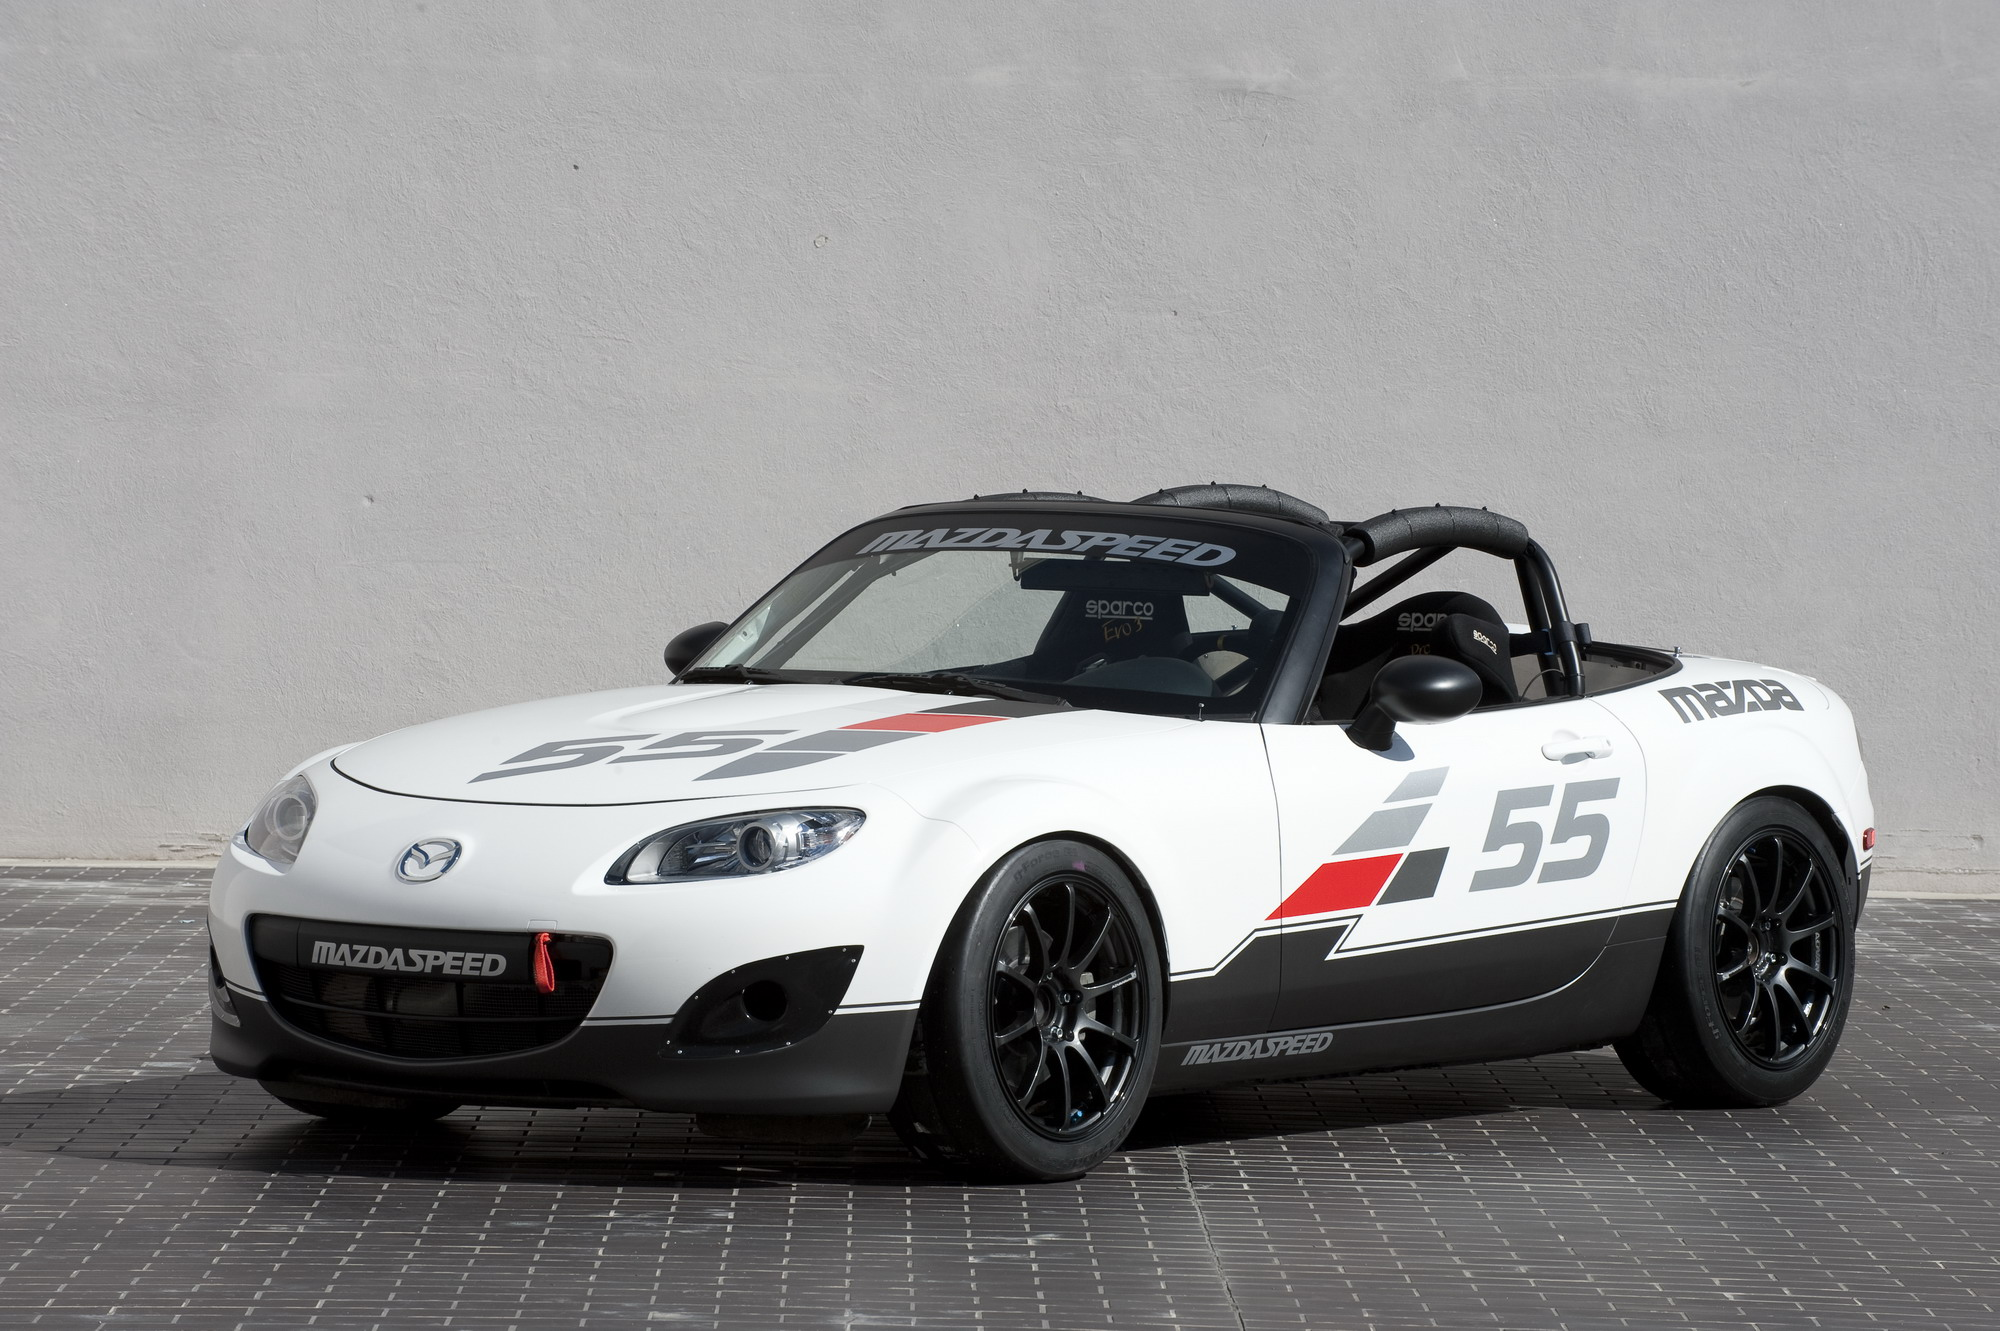 https://pictures.topspeed.com/IMG/jpg/201011/mazda-mx-5-cup-car.jpg